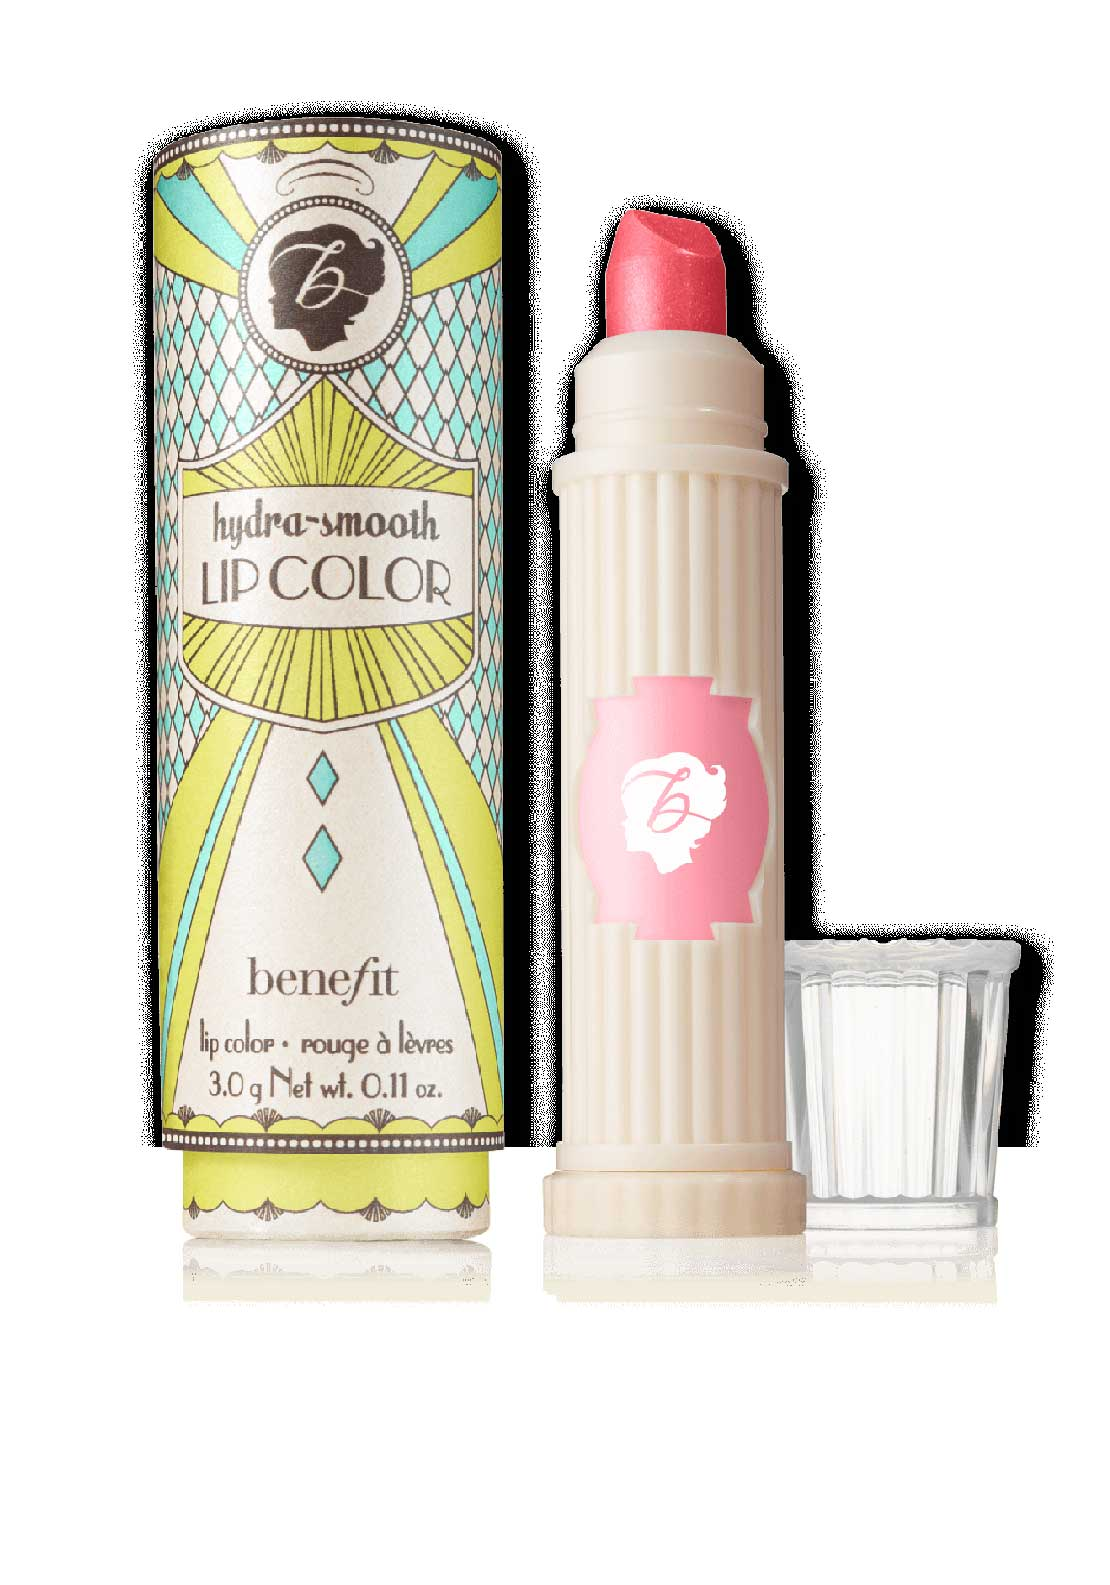 Benefit Hydra Smooth Juicy Details Lip Colour, Natural Pink